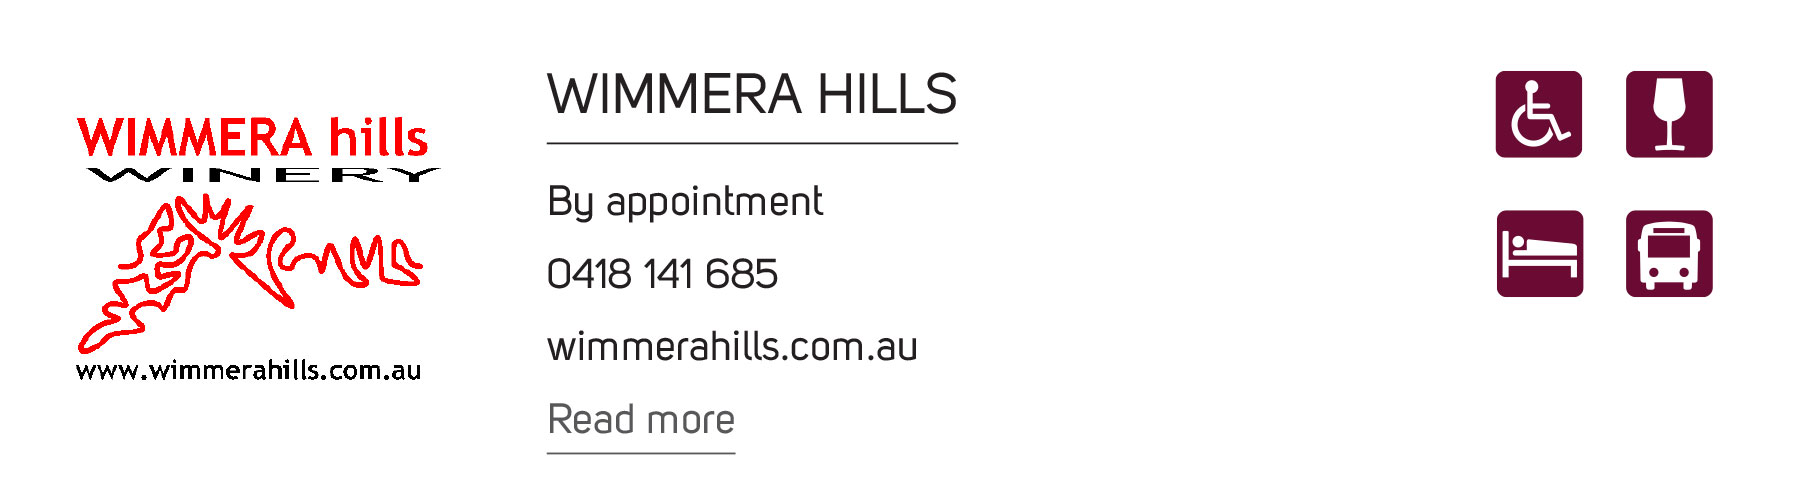 Wimmera Hills Button